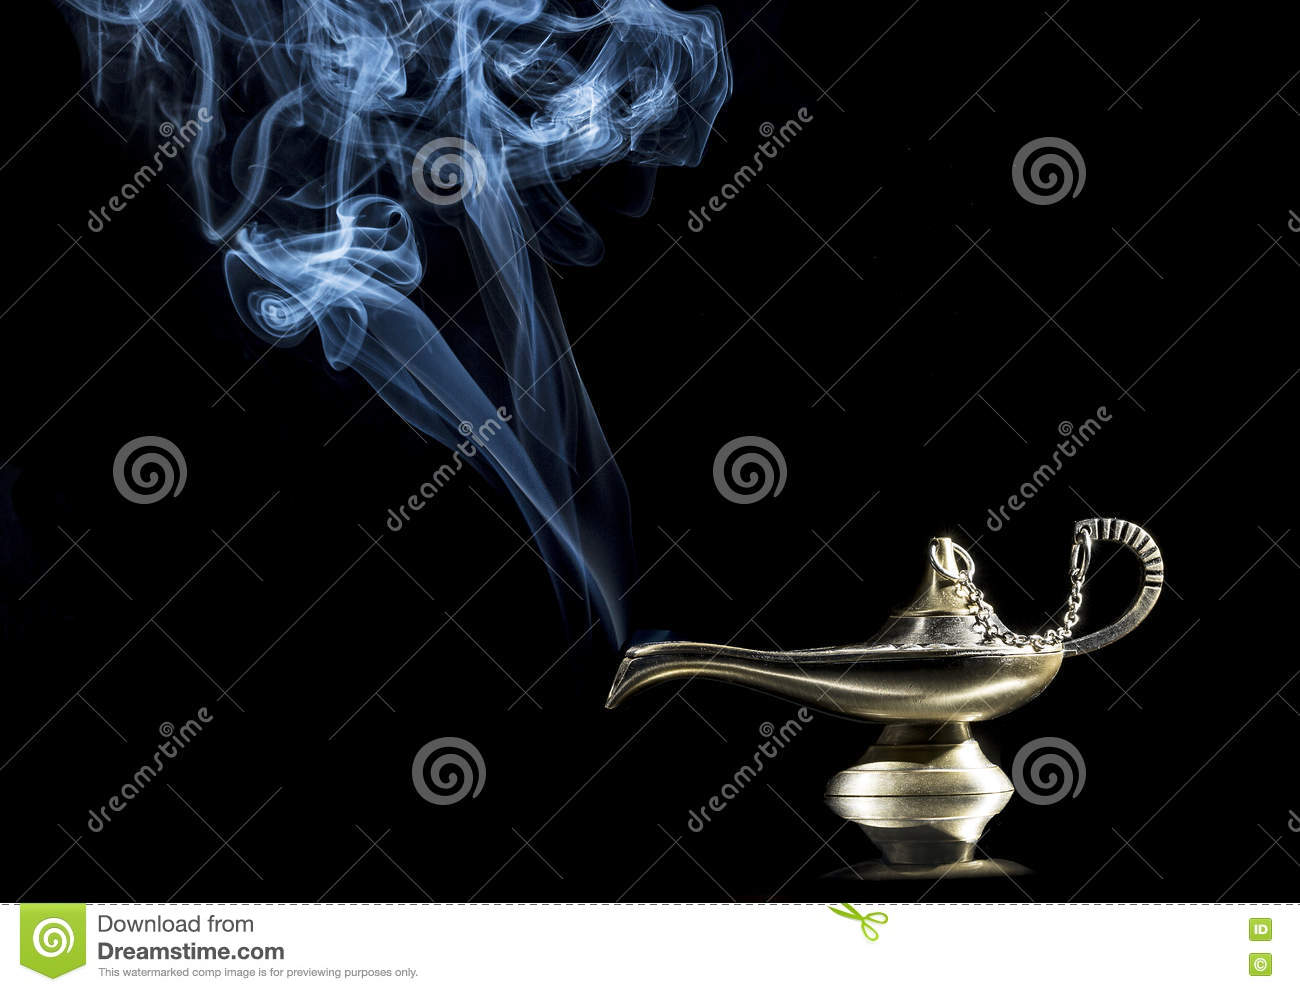 Magic Lamp On Black Background From The Story Of Aladdin With ... for Magic Lamp With Smoke  61obs